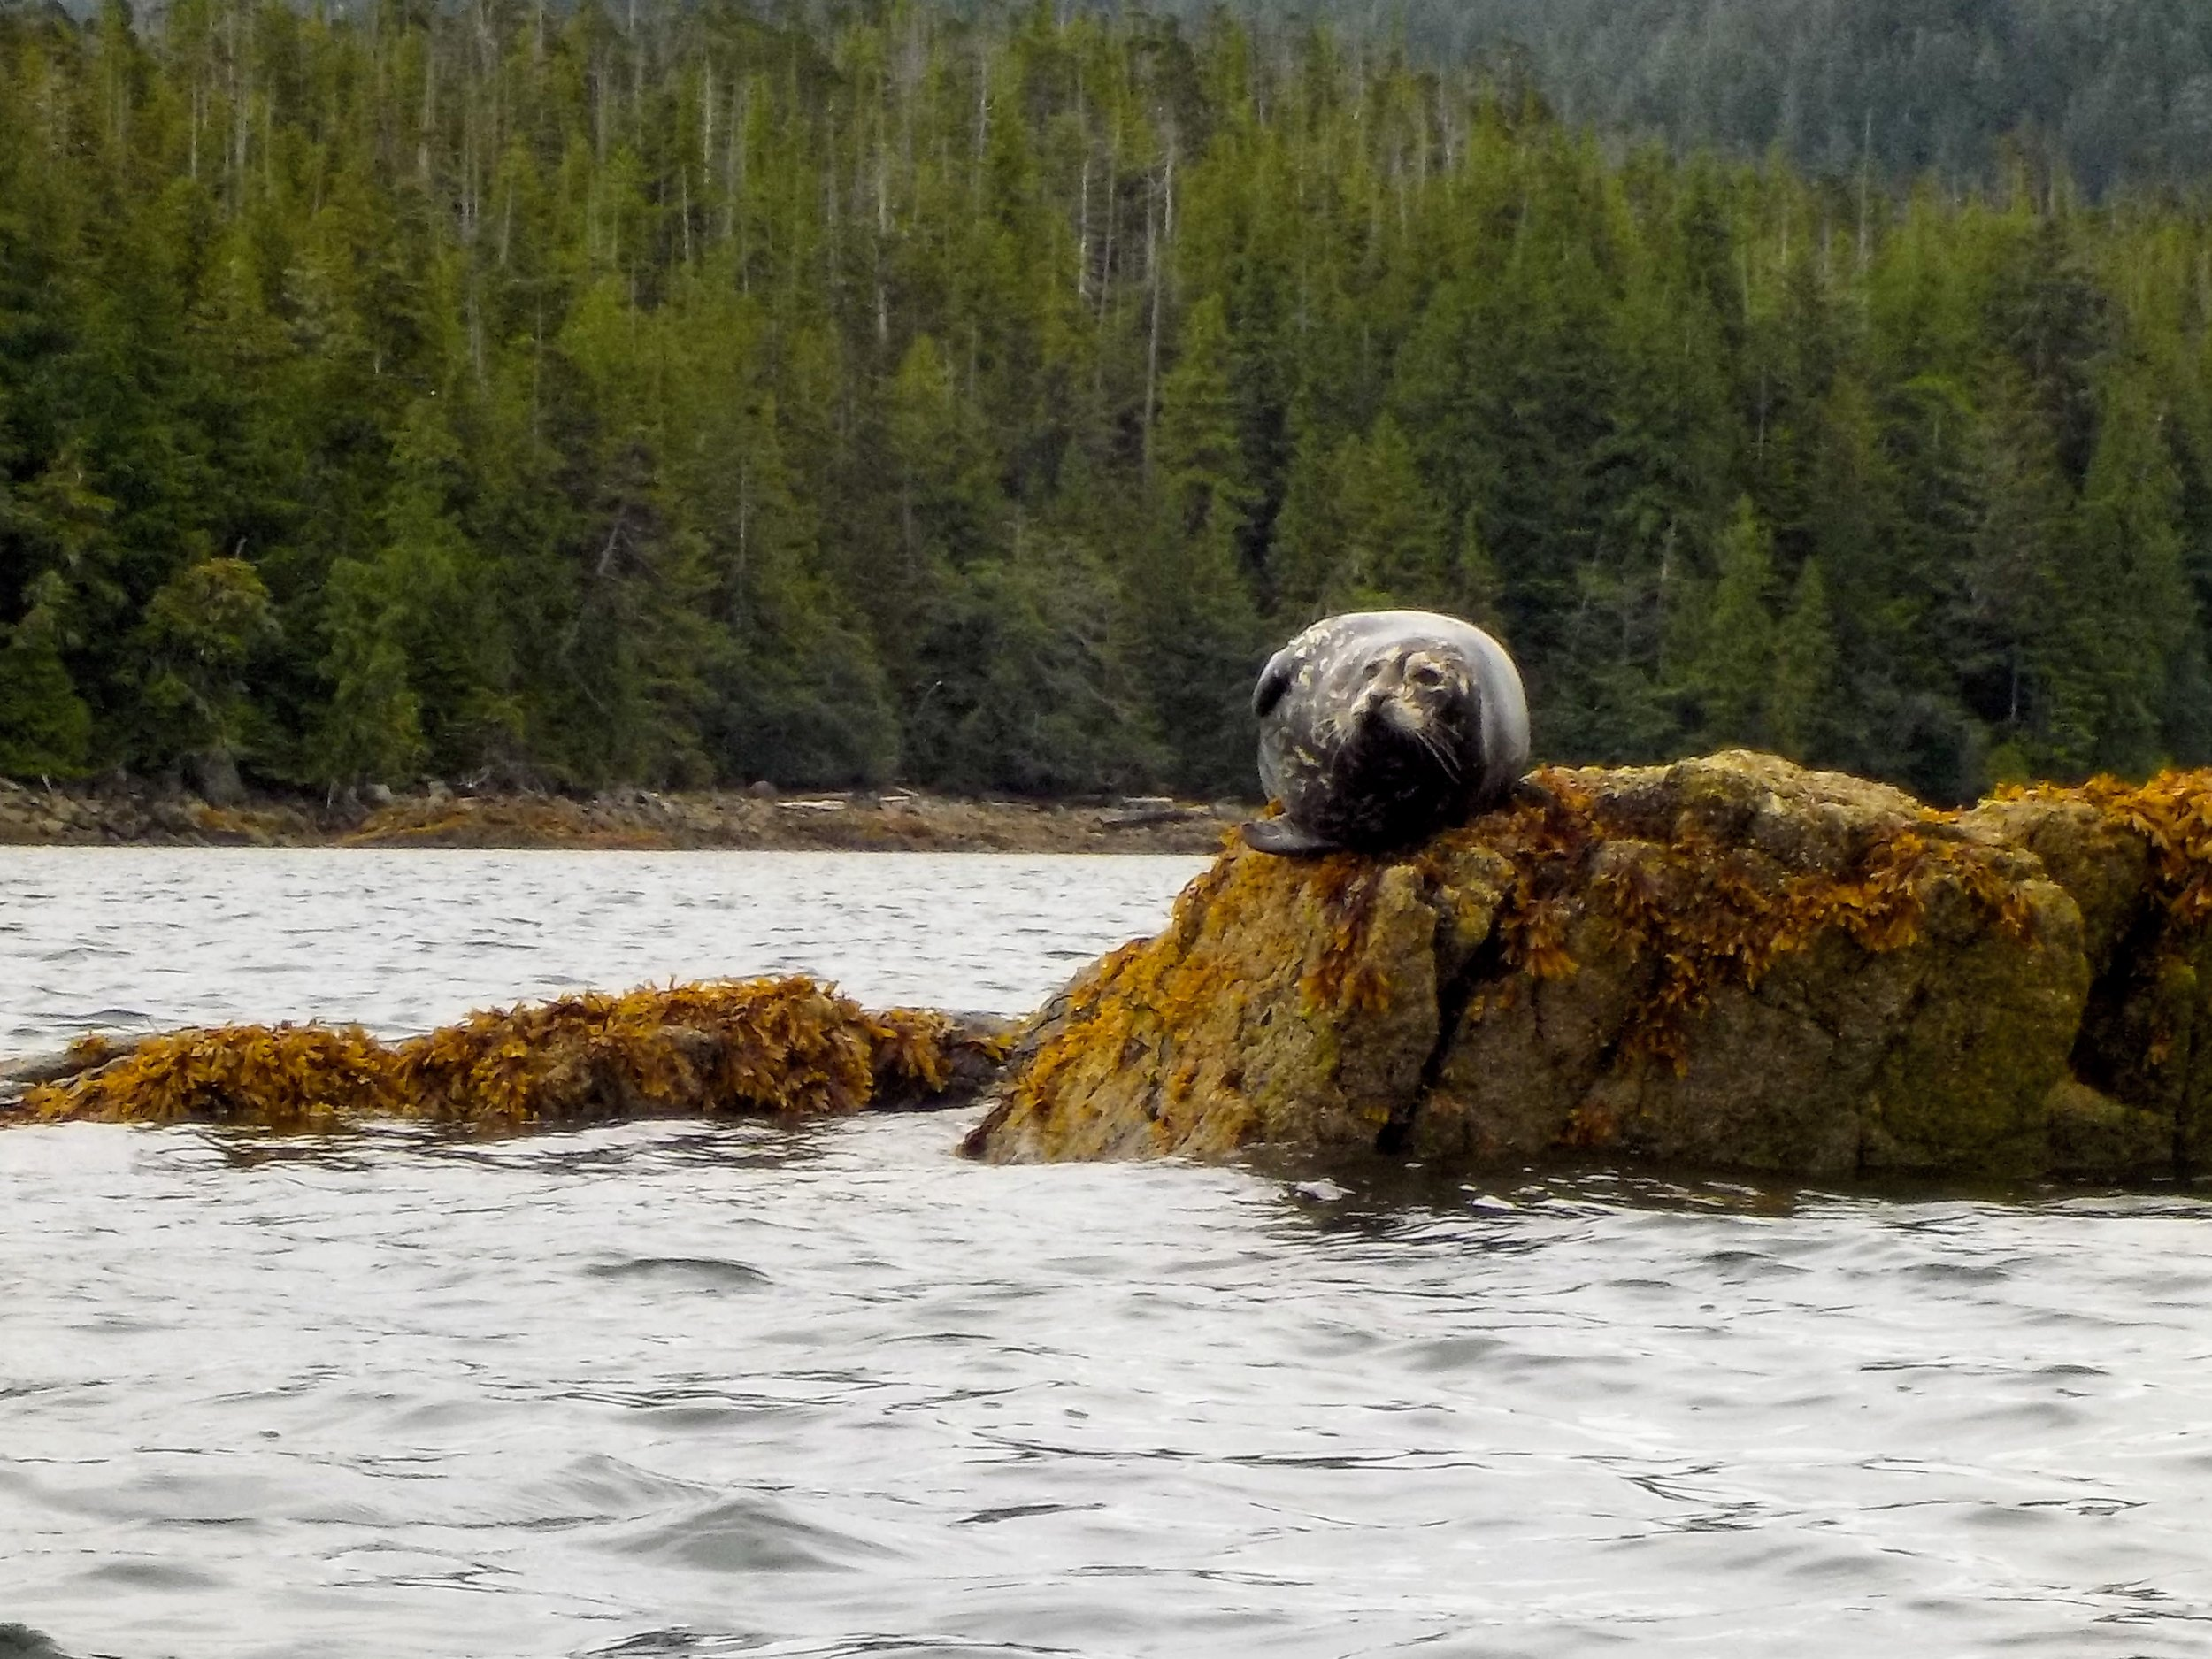 Seal on the rocks at Orcas Cove. Meeting animals in their natural environment is one of the great joys of sea kayaking.